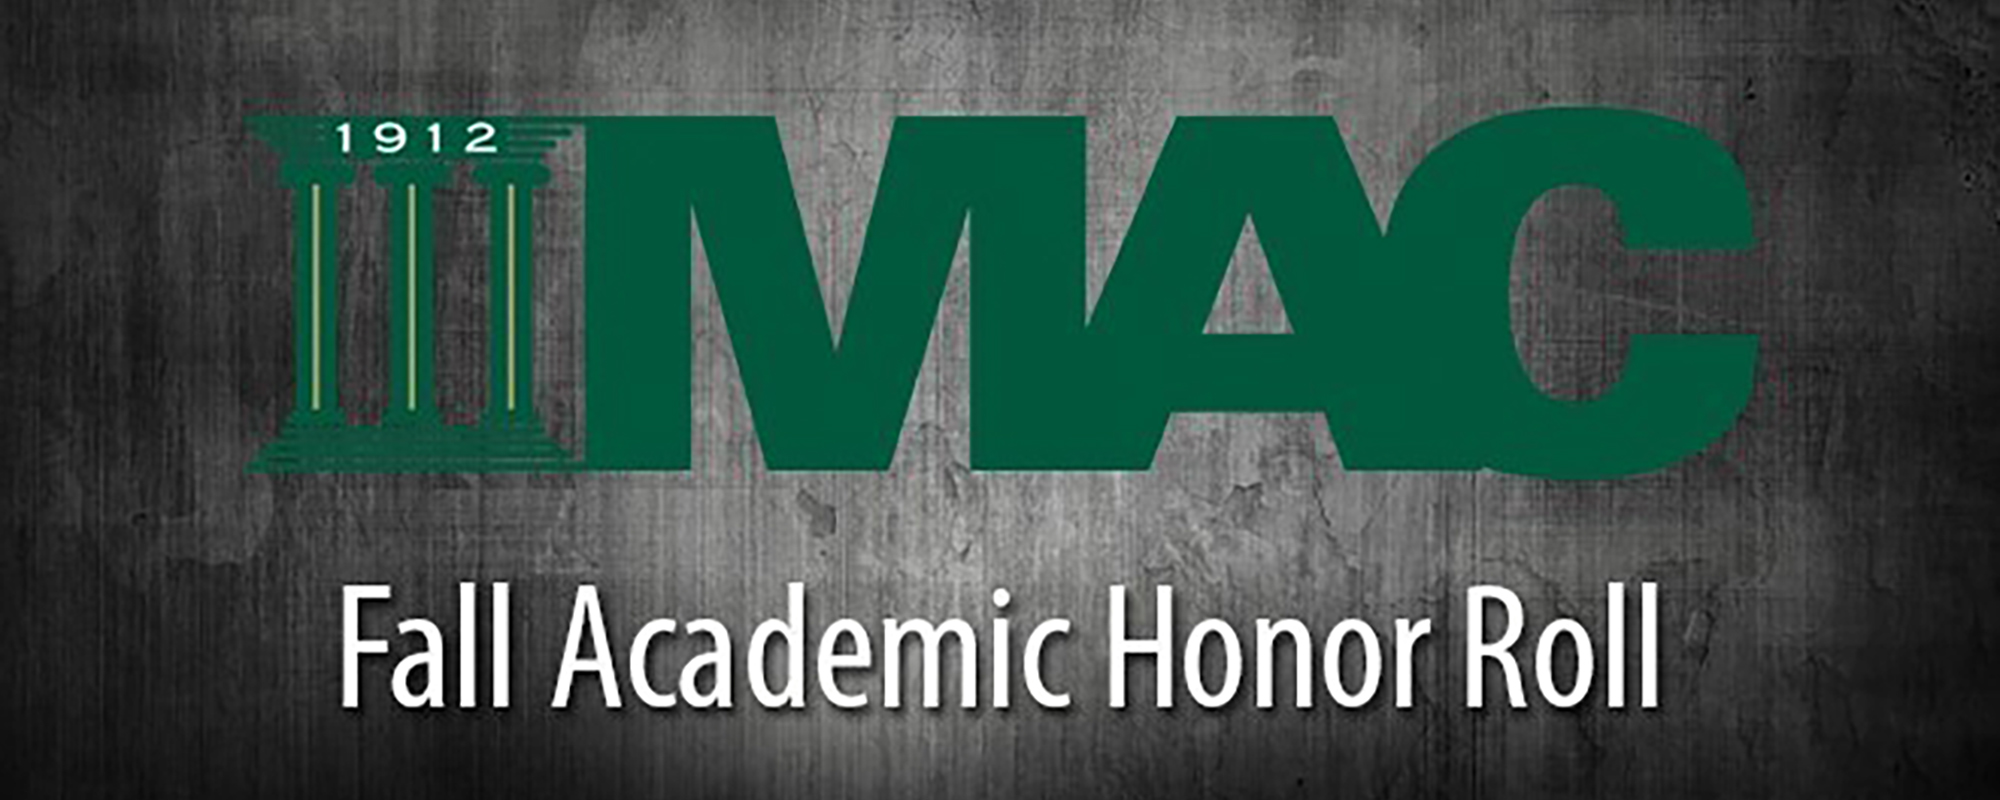 131 Named to Fall MAC Academic Honor Roll